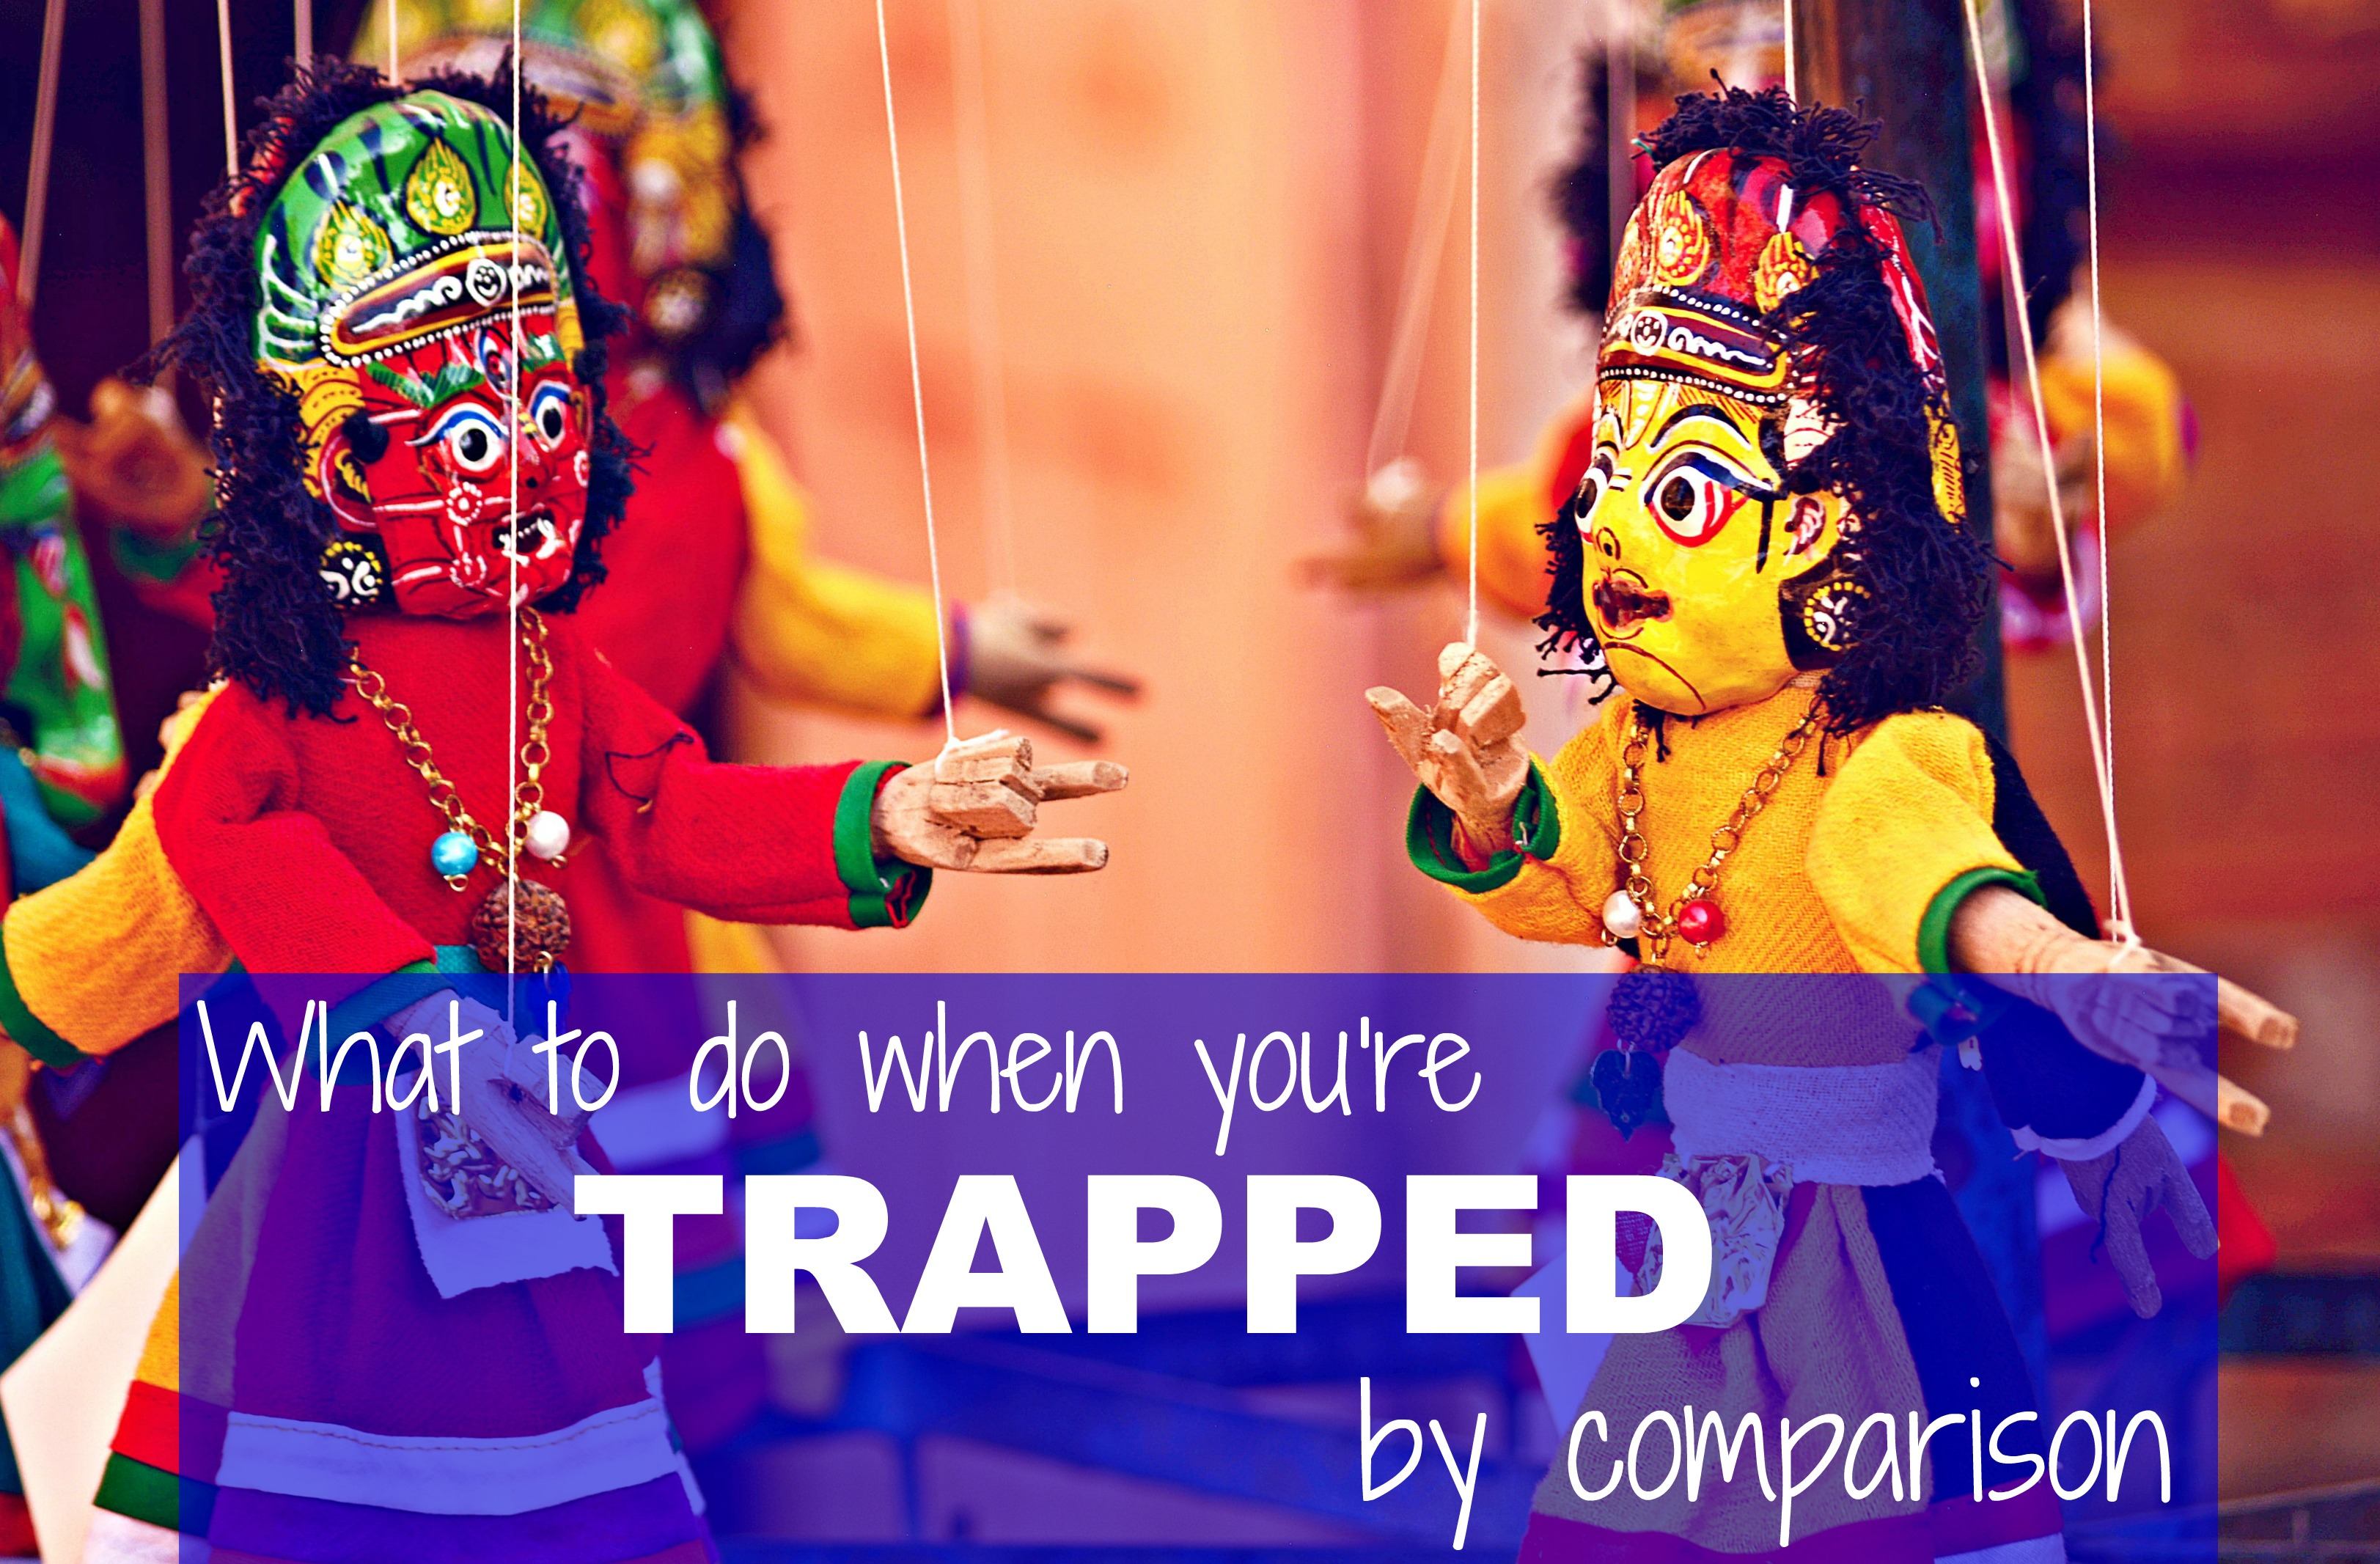 What to do when you're trapped by comparison